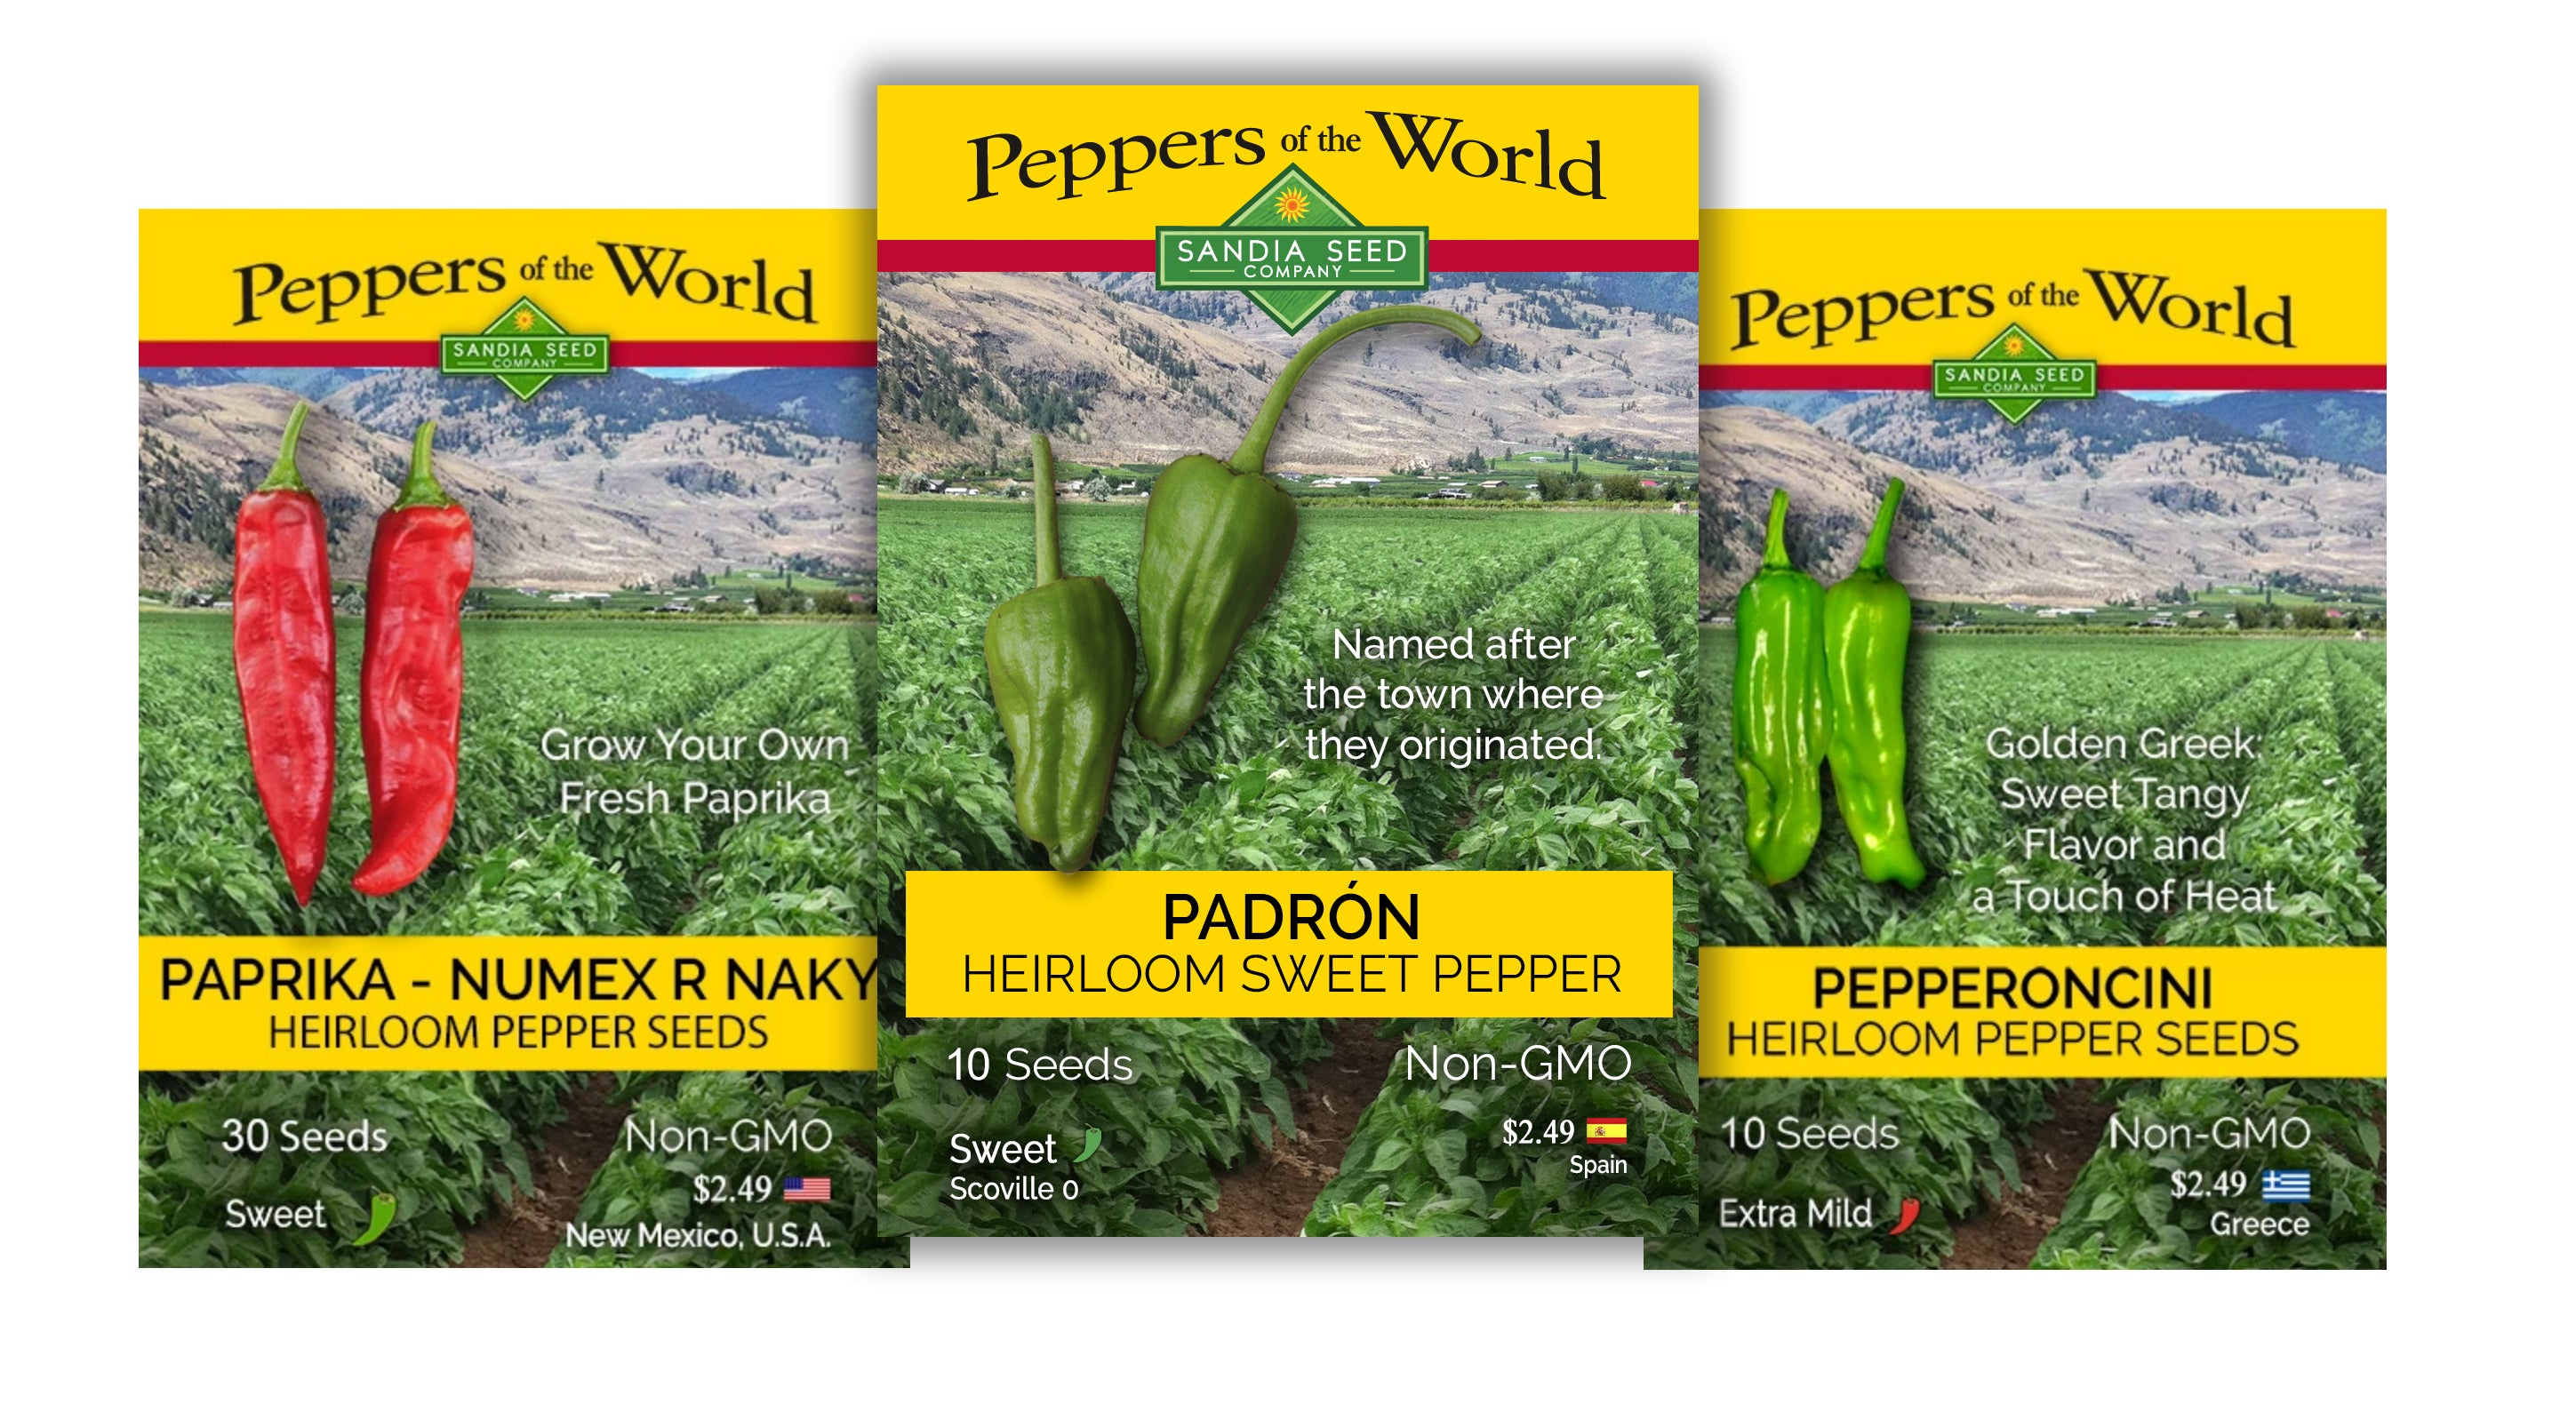 Discount Seeds - CHEF'S 3-PACK: PADRON, PAPRIKA AND PEPPERONCINI SEEDS